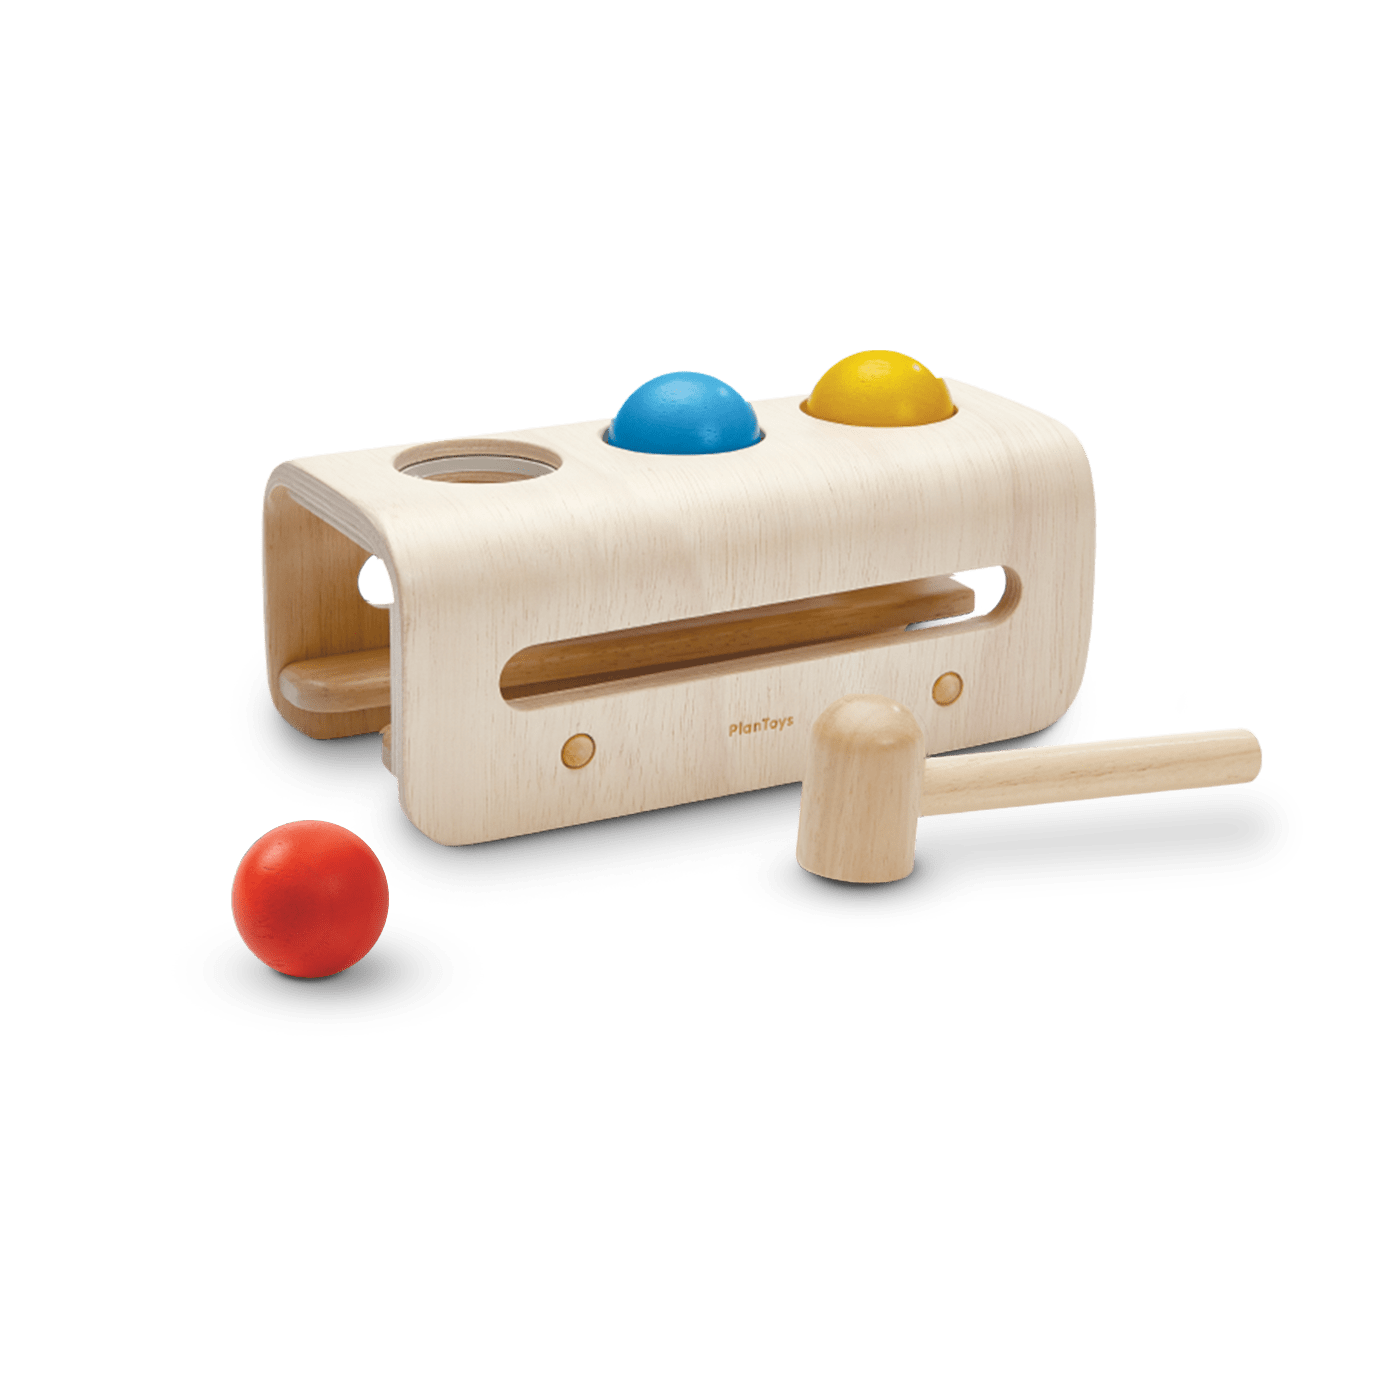 5396_PlanToys_HAMMER_BALLS_Learning_and_Education_Fine_Motor_Coordination_Visual_Mathematical_Language_and_Communications_12m_Wooden_toys_Education_toys_Safety_Toys_Non-toxic_0.png